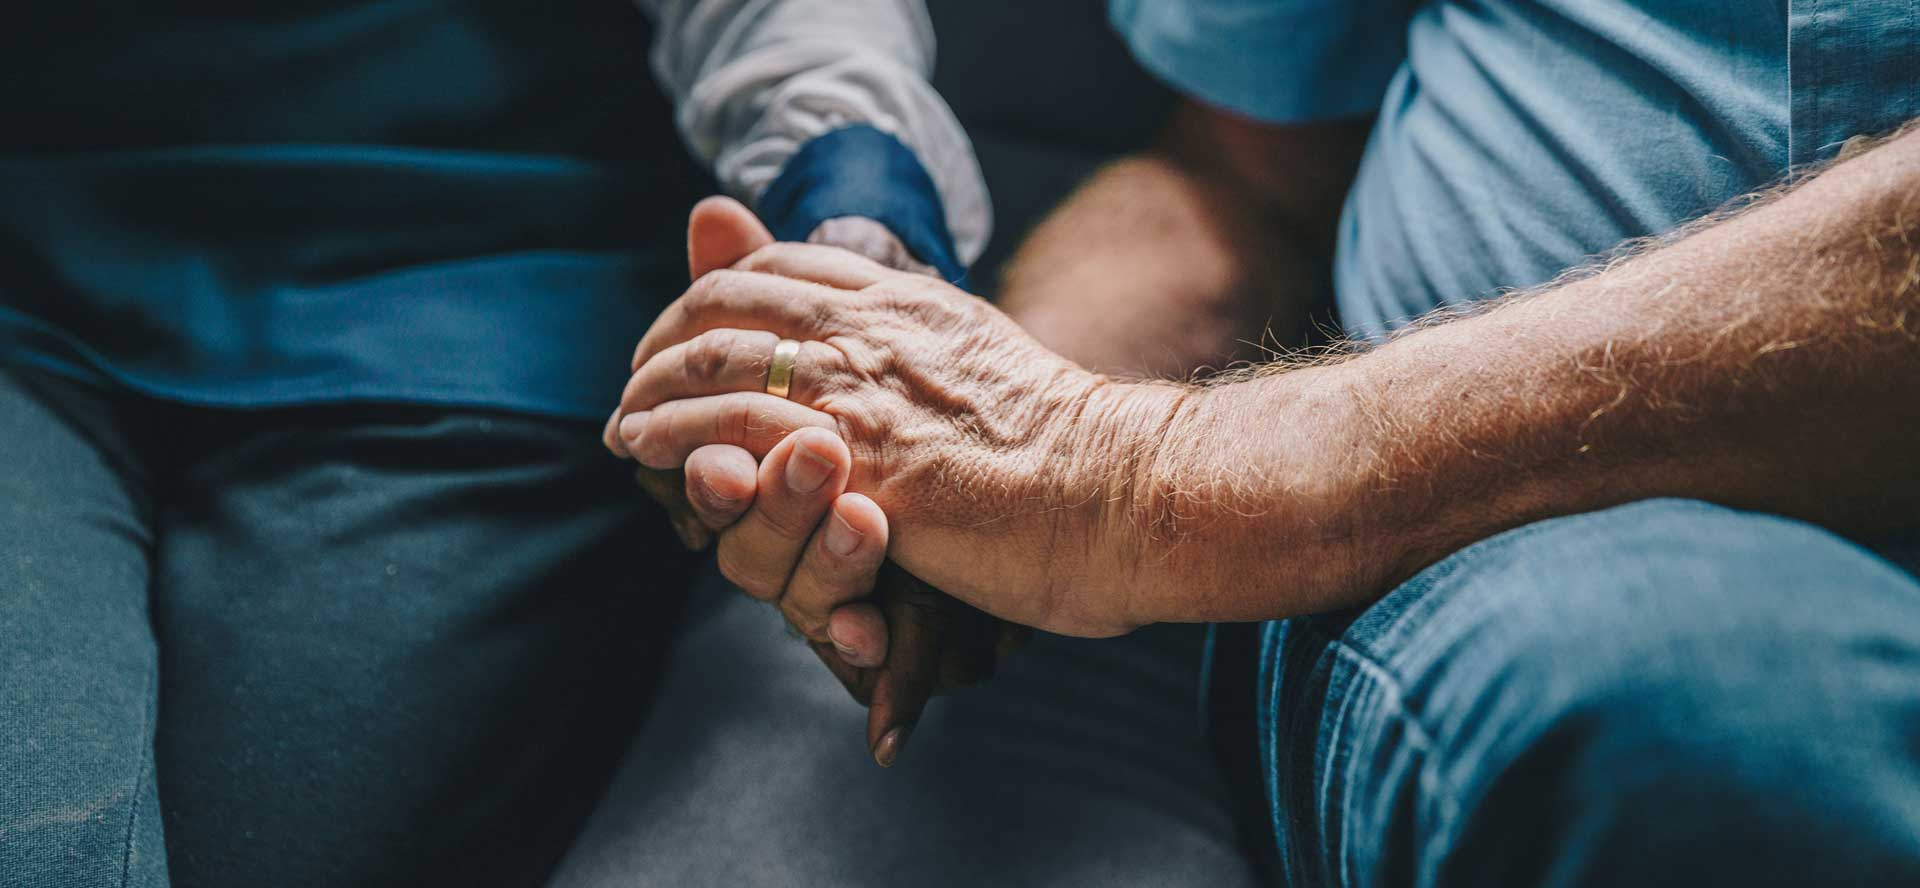 older man's hand holding woman's hand on couch